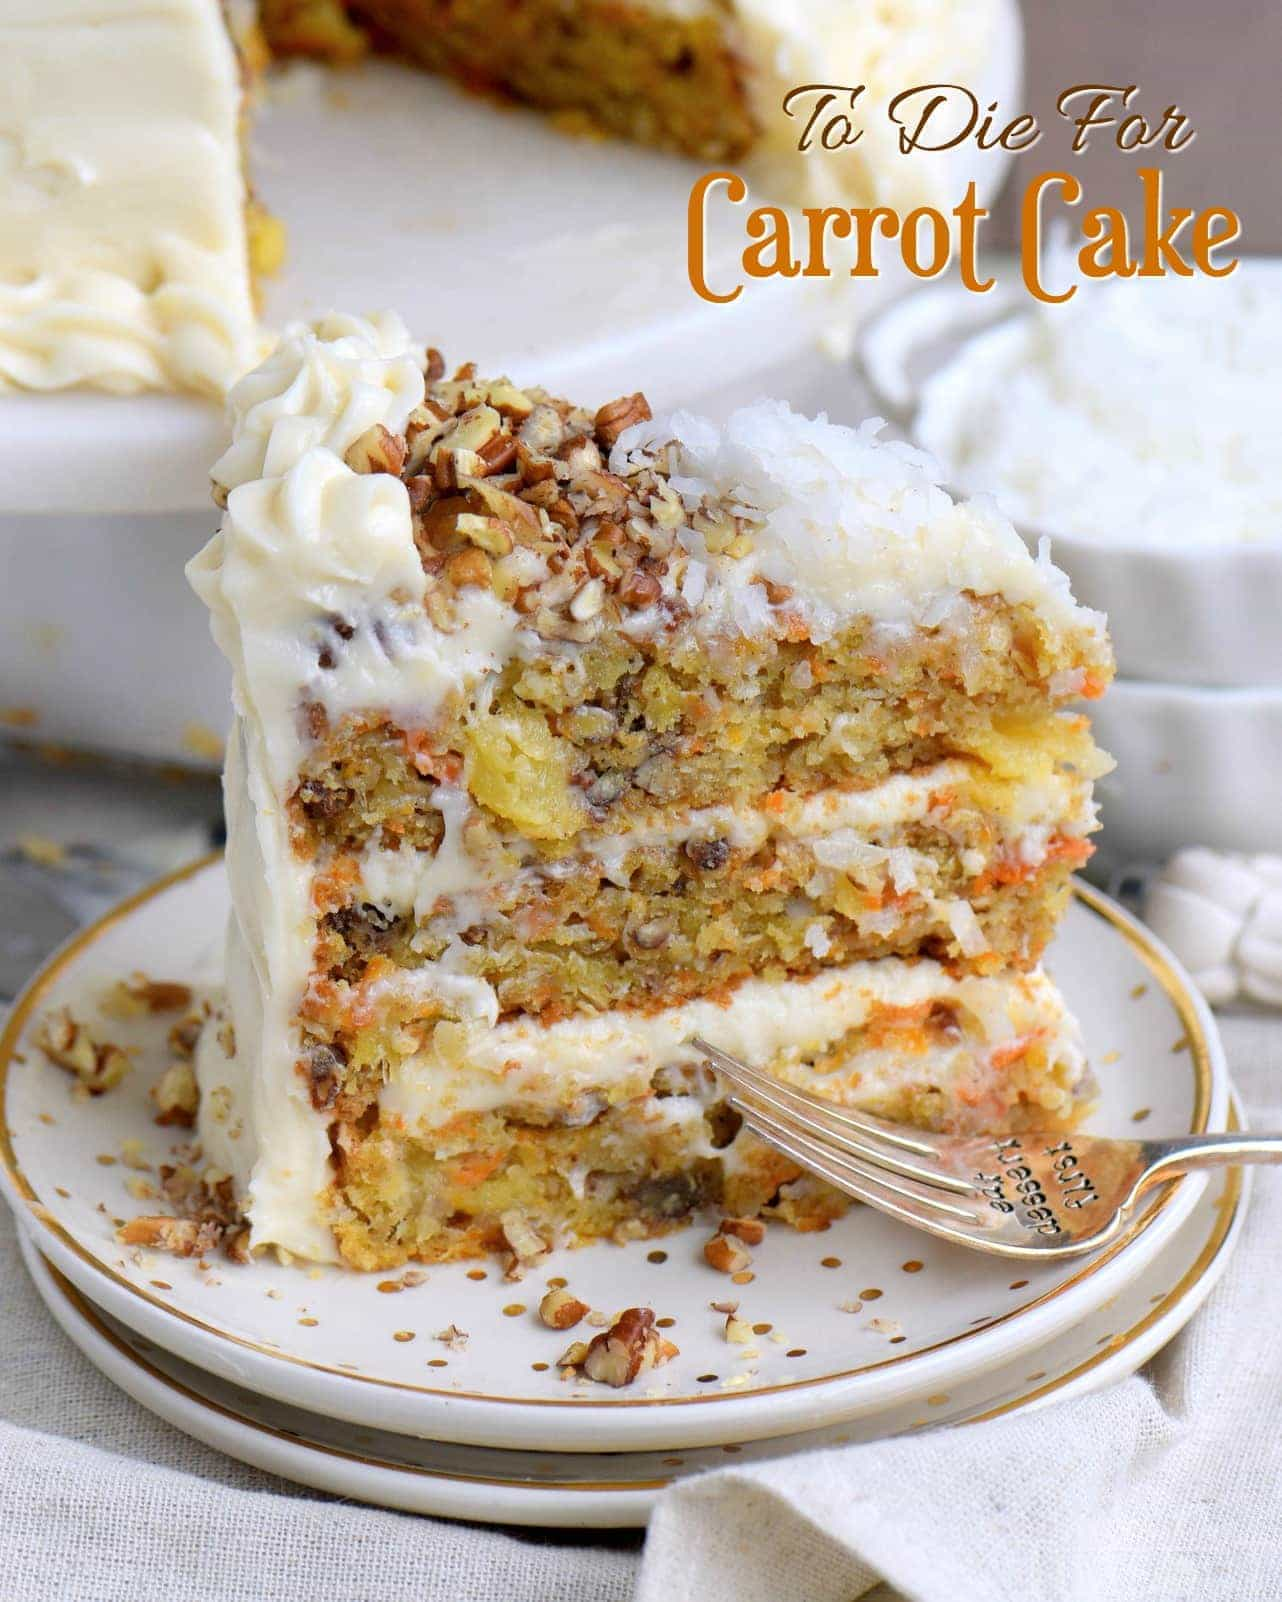 Chocolate Carrot Cake With Pineapple